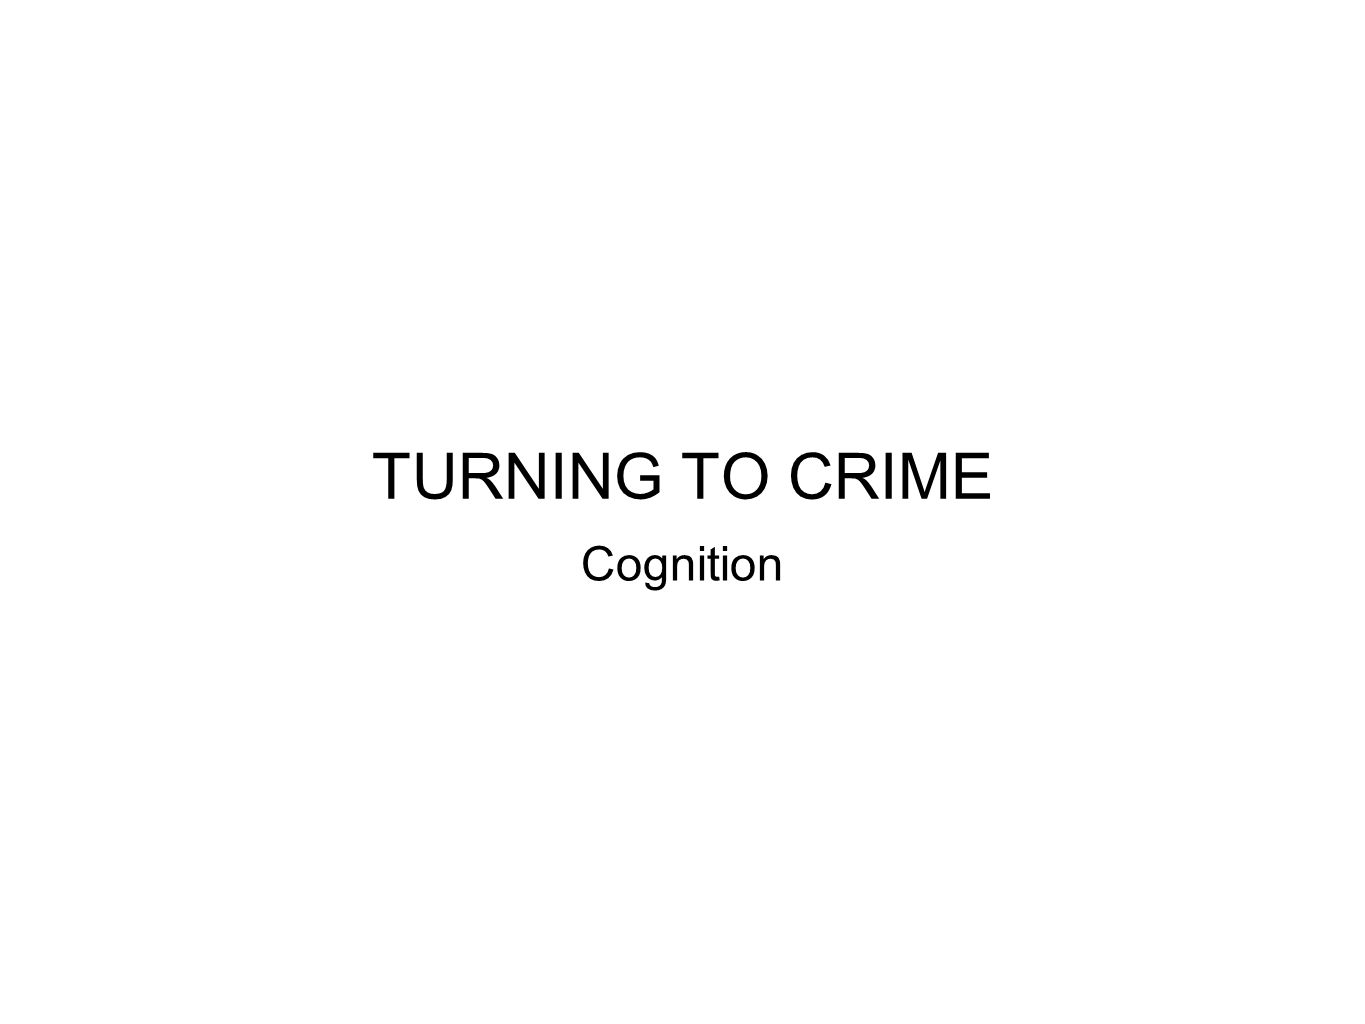 It is believed in the UK that by the age of 10, children clearly know the difference between right and wrong and therefore the criminal justice system sets the age of criminal responsibility at this point.